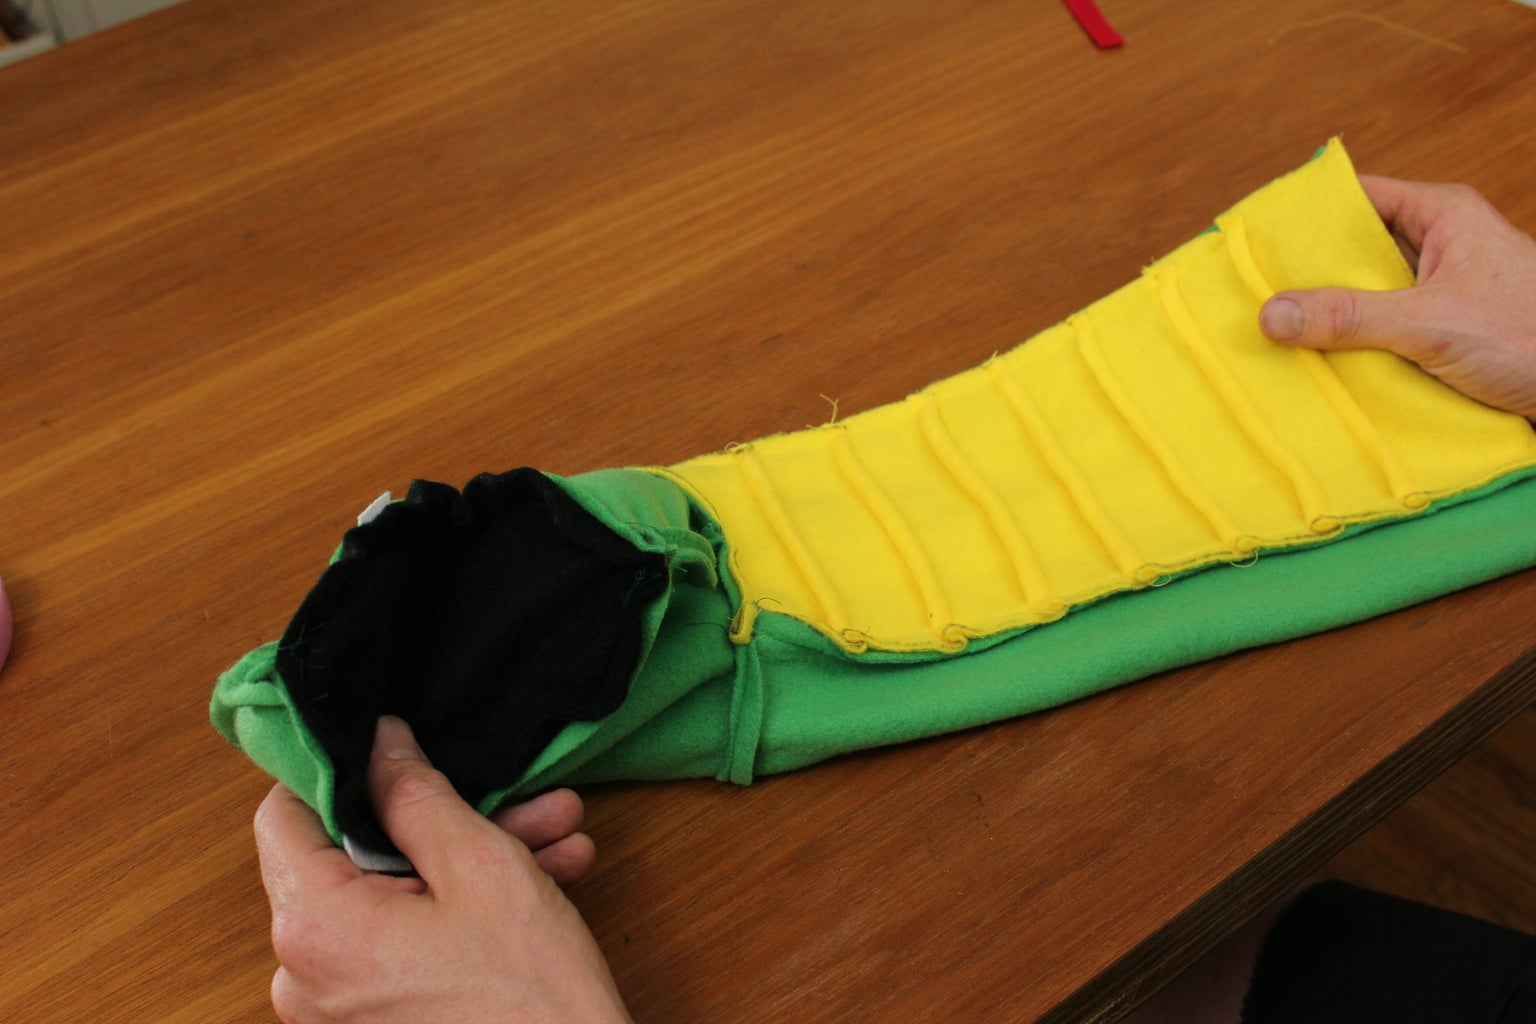 Attaching the Head to the Body